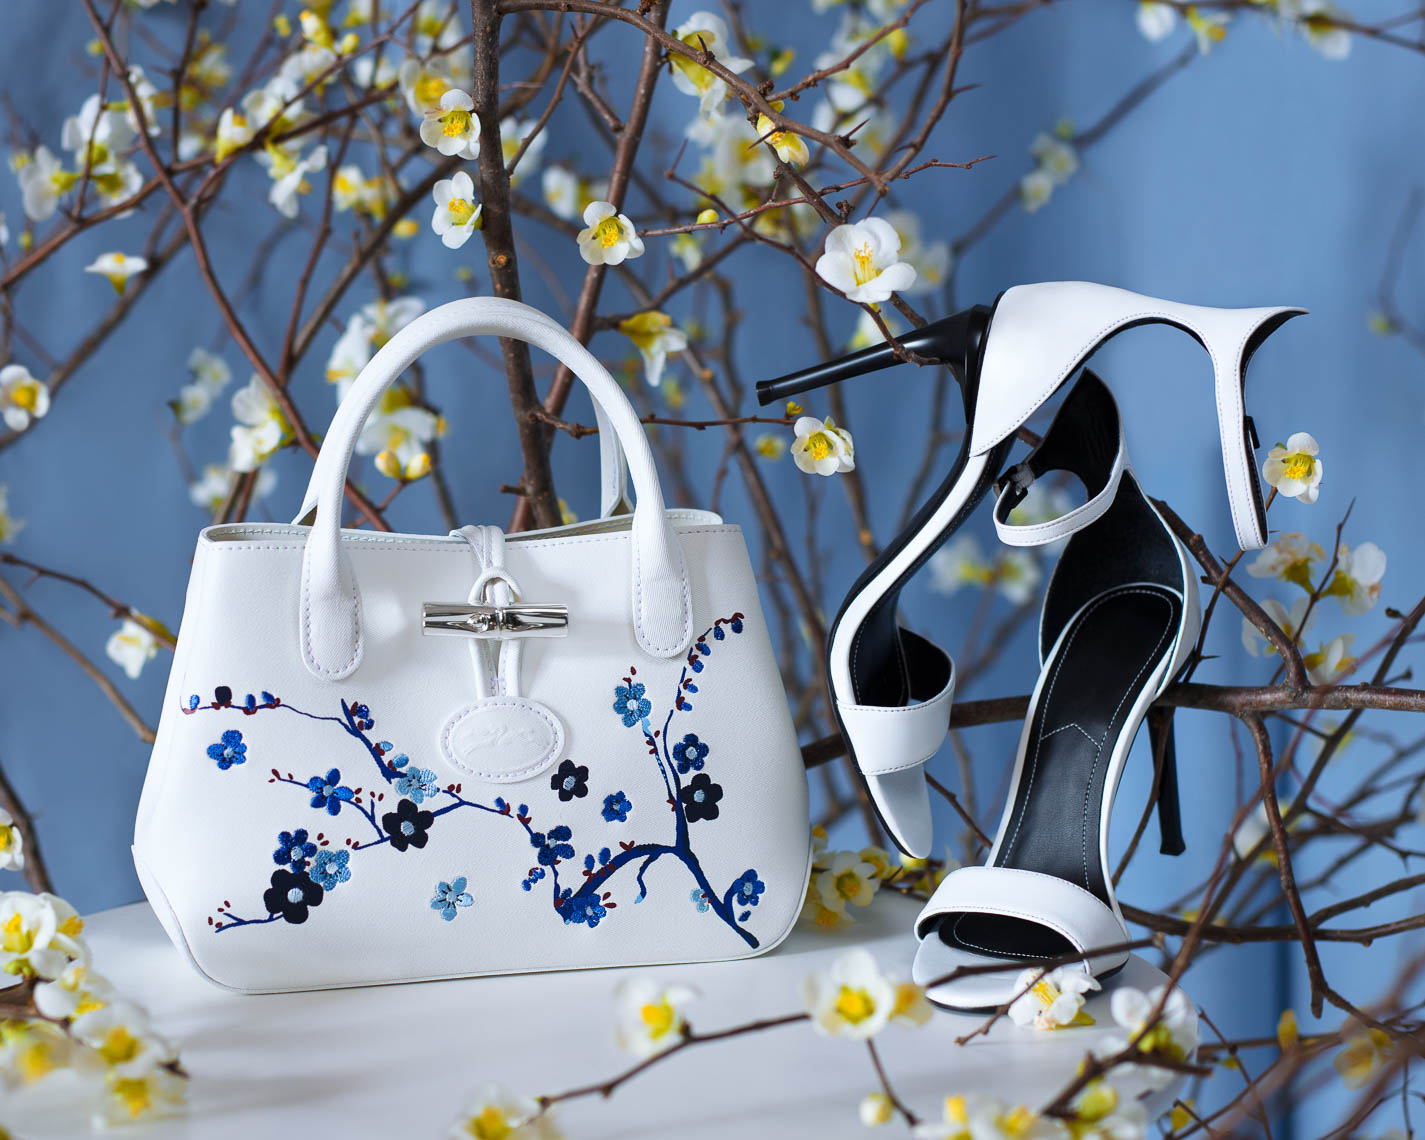 White leather handbag with high heel shoes and white flowers on a light blue background